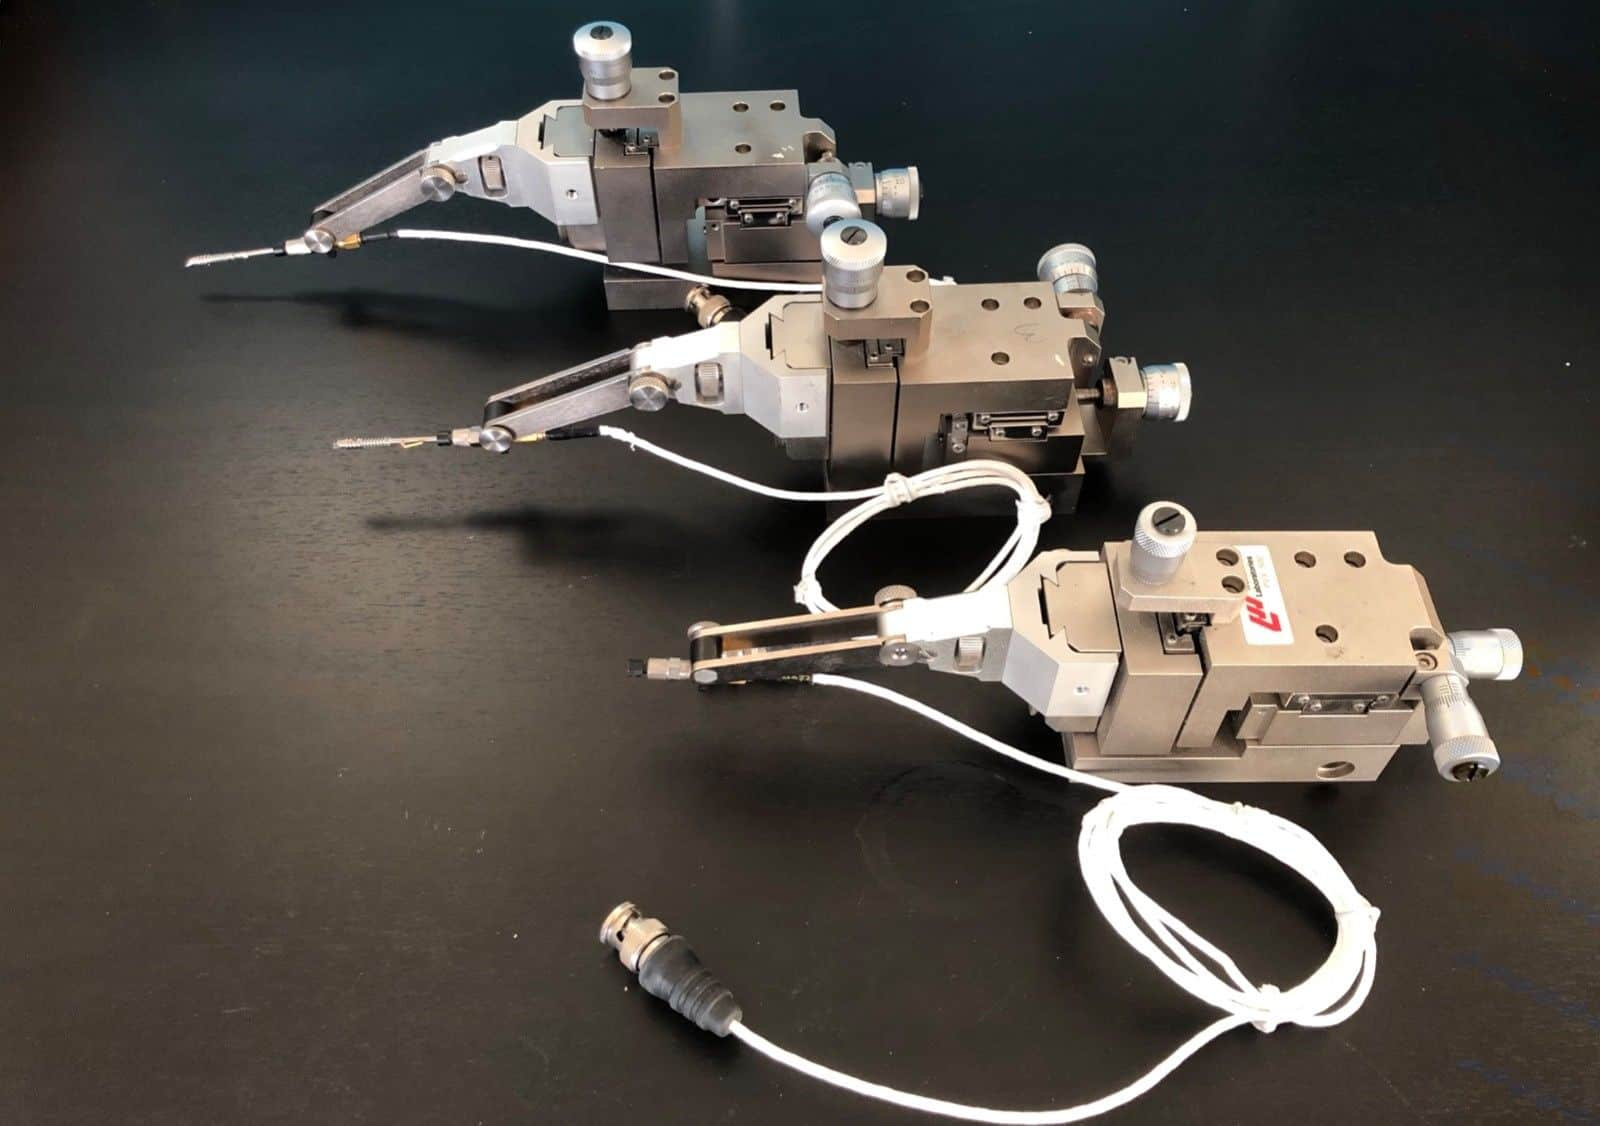 3x Wentworth PVX500 micromanipulators - refurbished & excellent condition